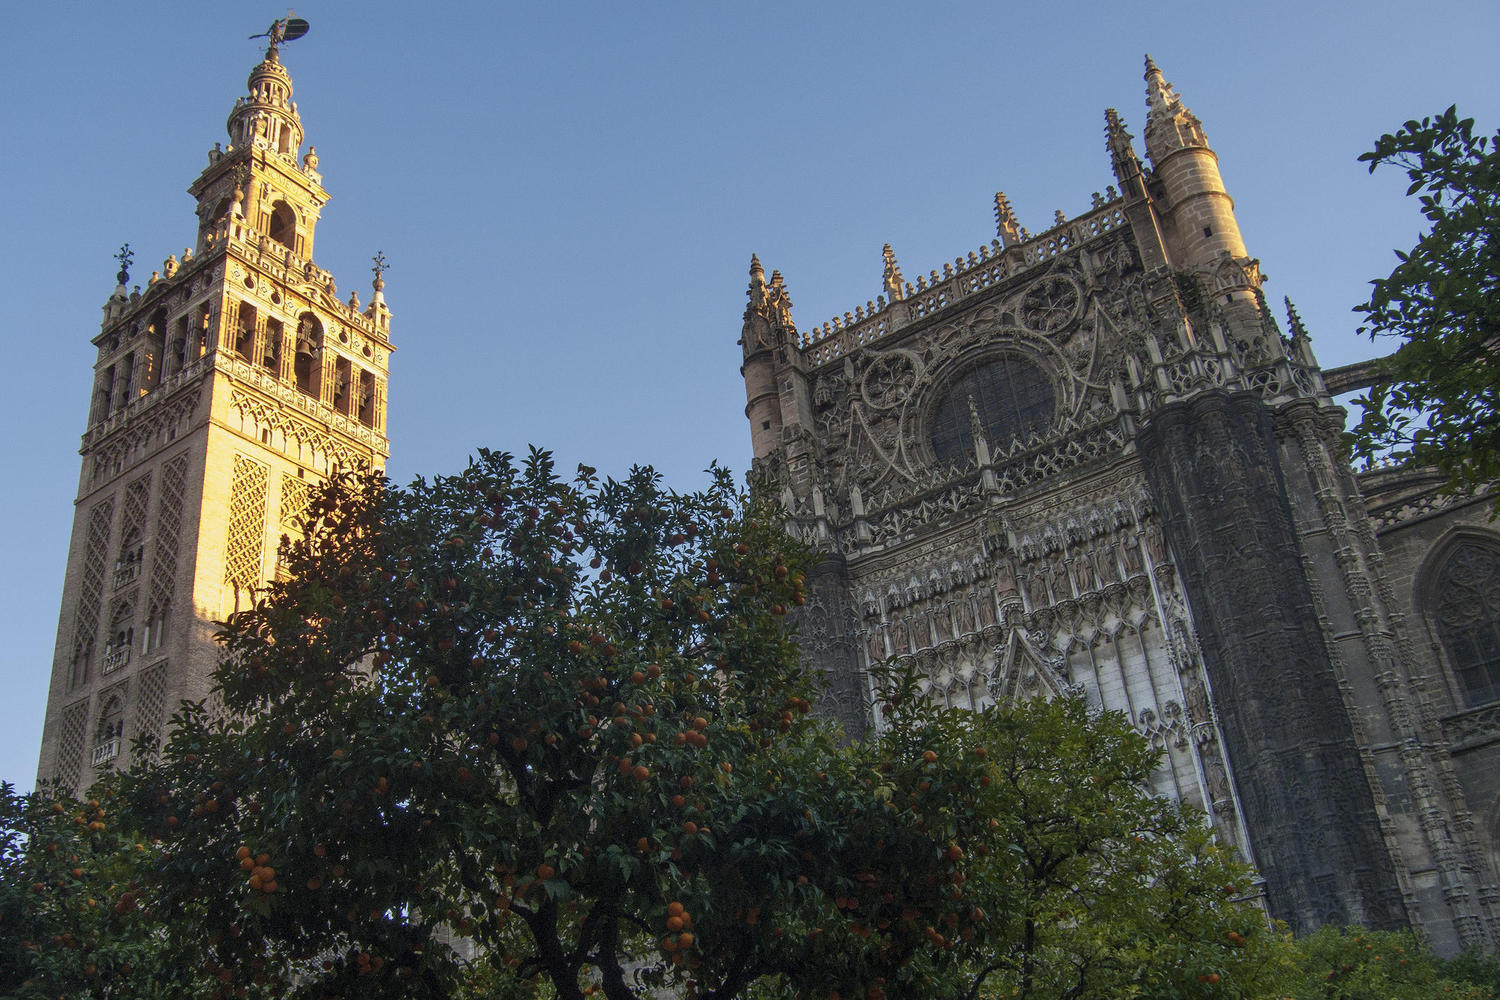 The orange courtyard of the cathedral in Seville